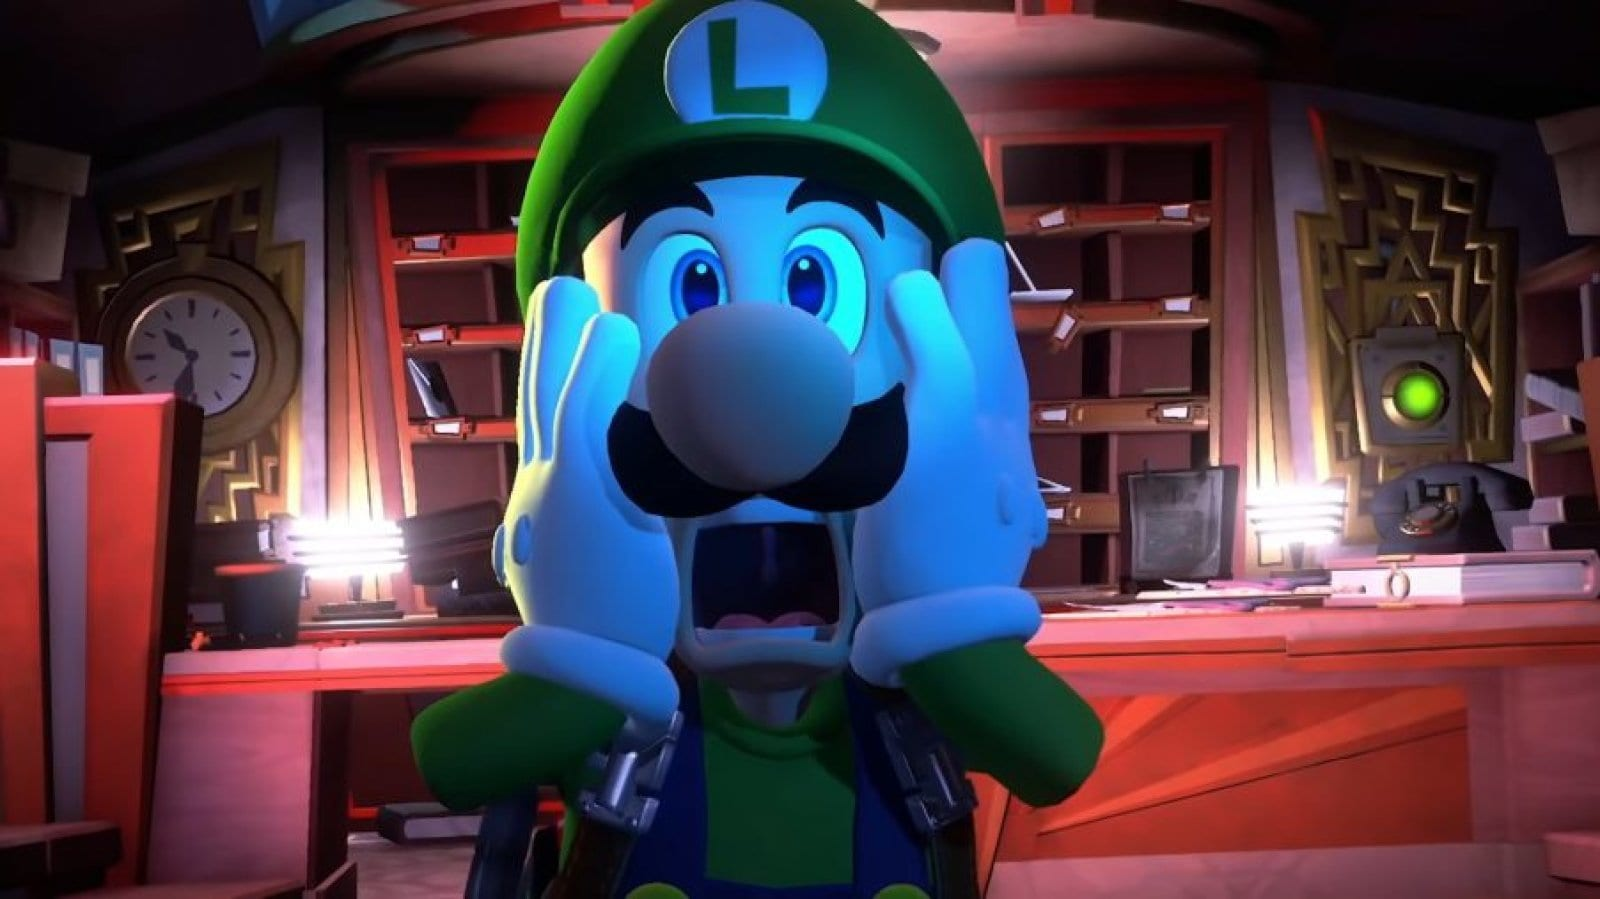 Luigi's mansion 3, how to beat mechanic, boilerworks boss